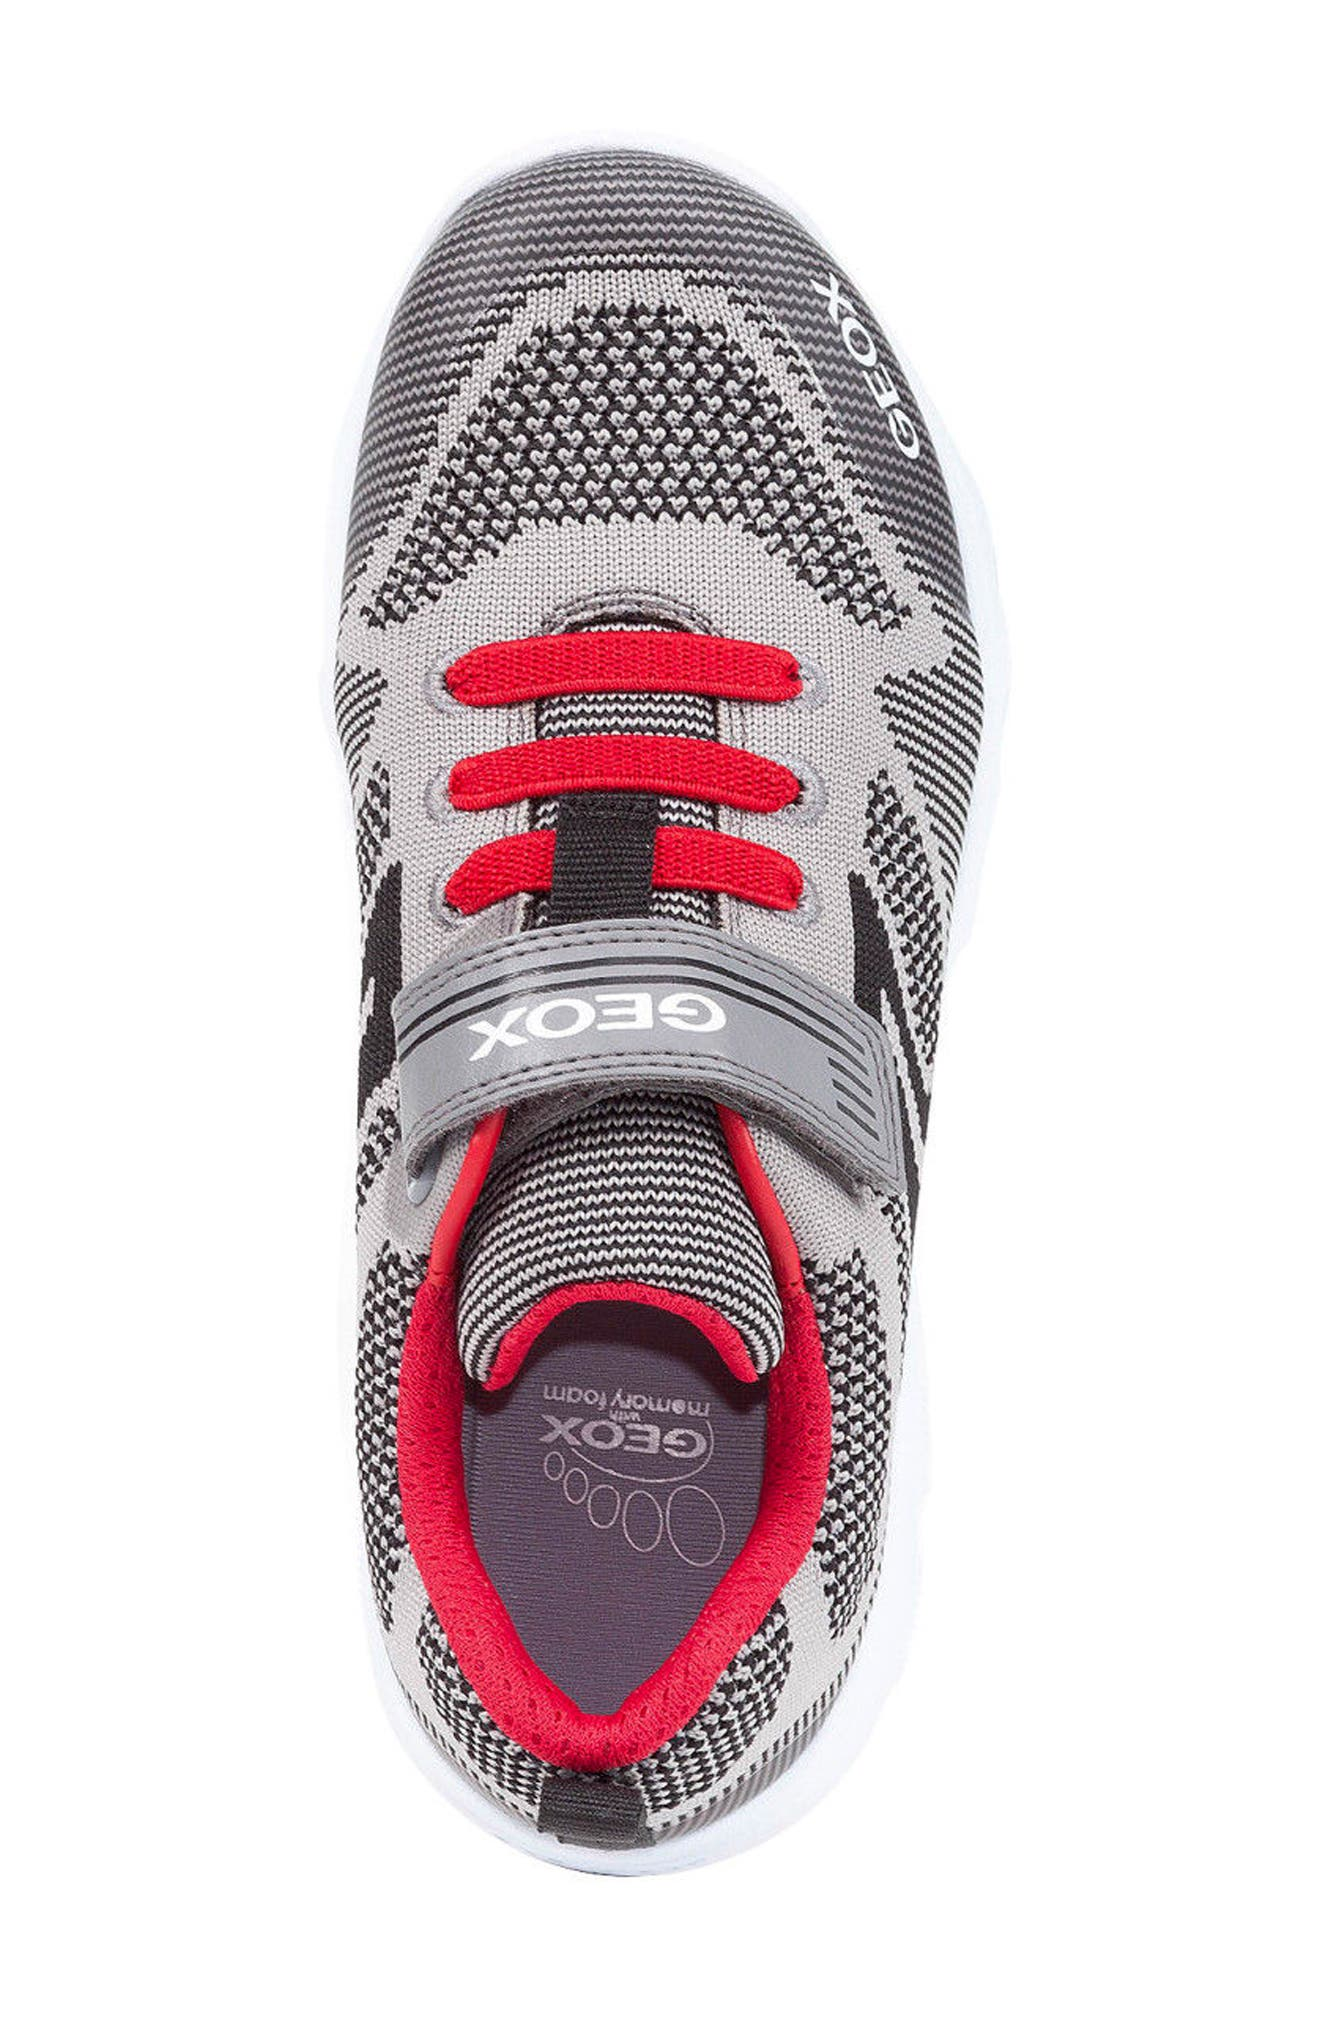 Xunday Low Top Woven Sneaker,                             Alternate thumbnail 4, color,                             063